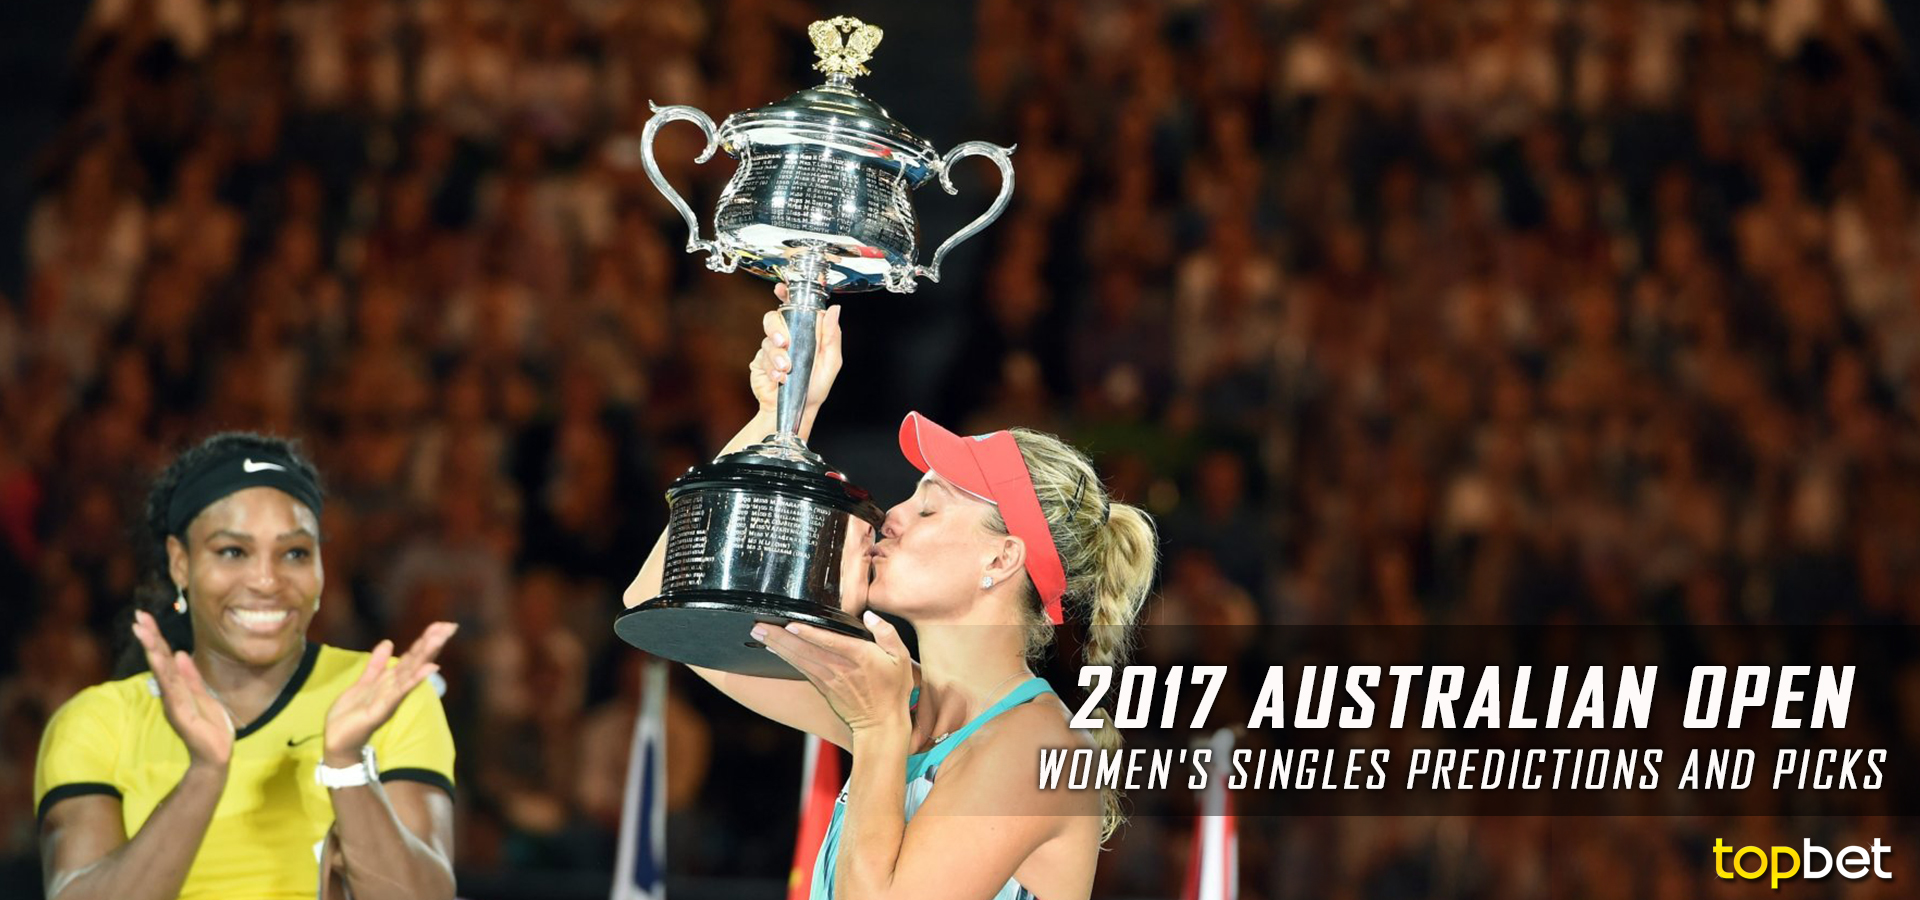 2017 Australian Open Women's Tennis Betting Predictions/Odds